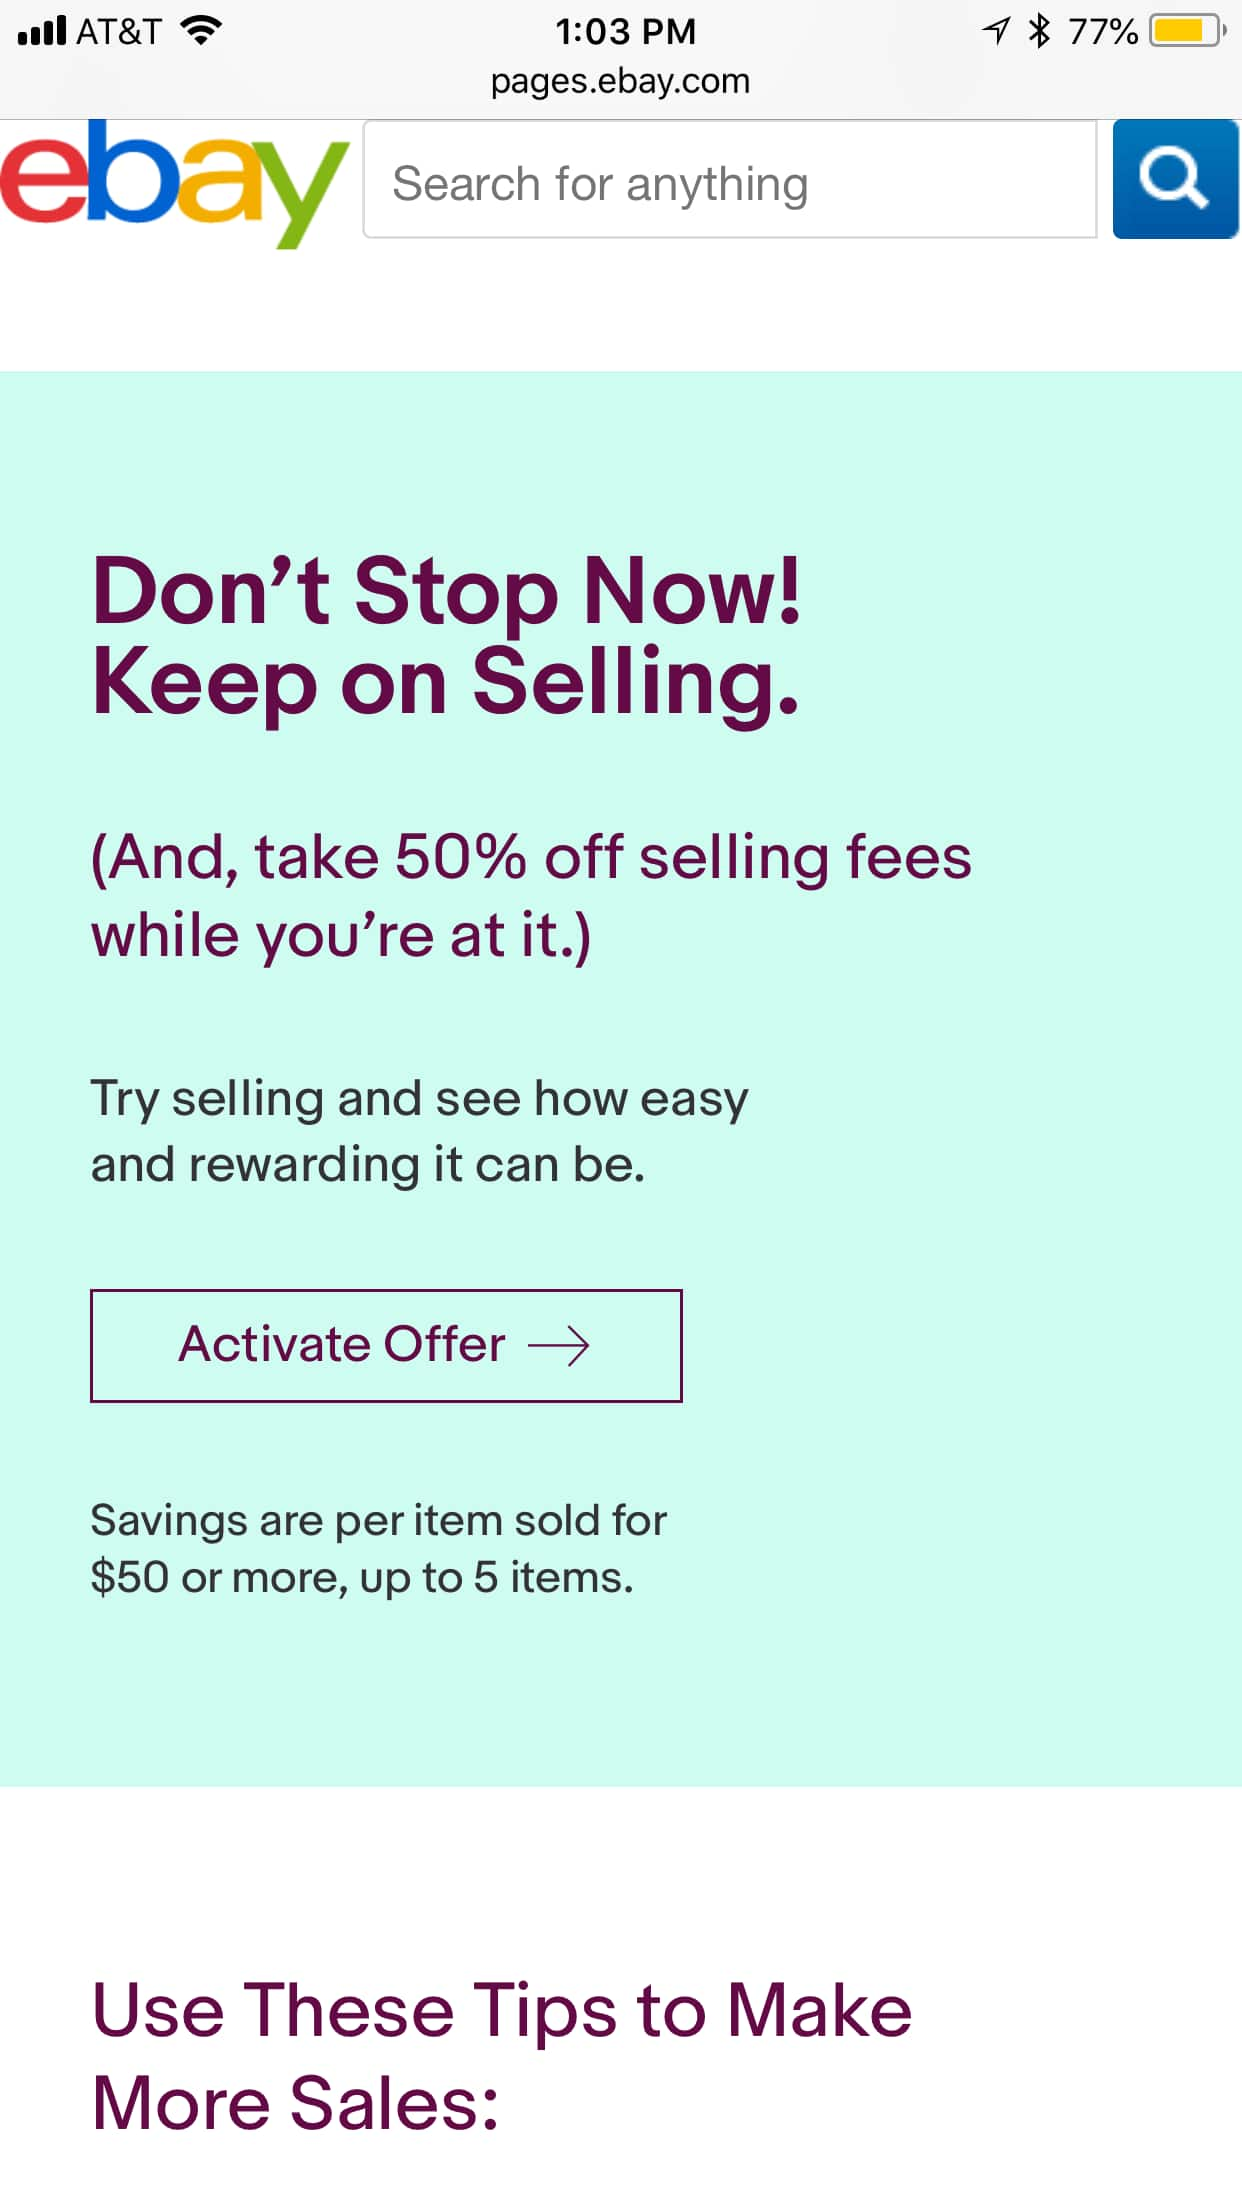 Ymmv Ebay Sellers 50 Off Final Value Fees On Up To 5 Items Sold For 50 Or More Slickdeals Net